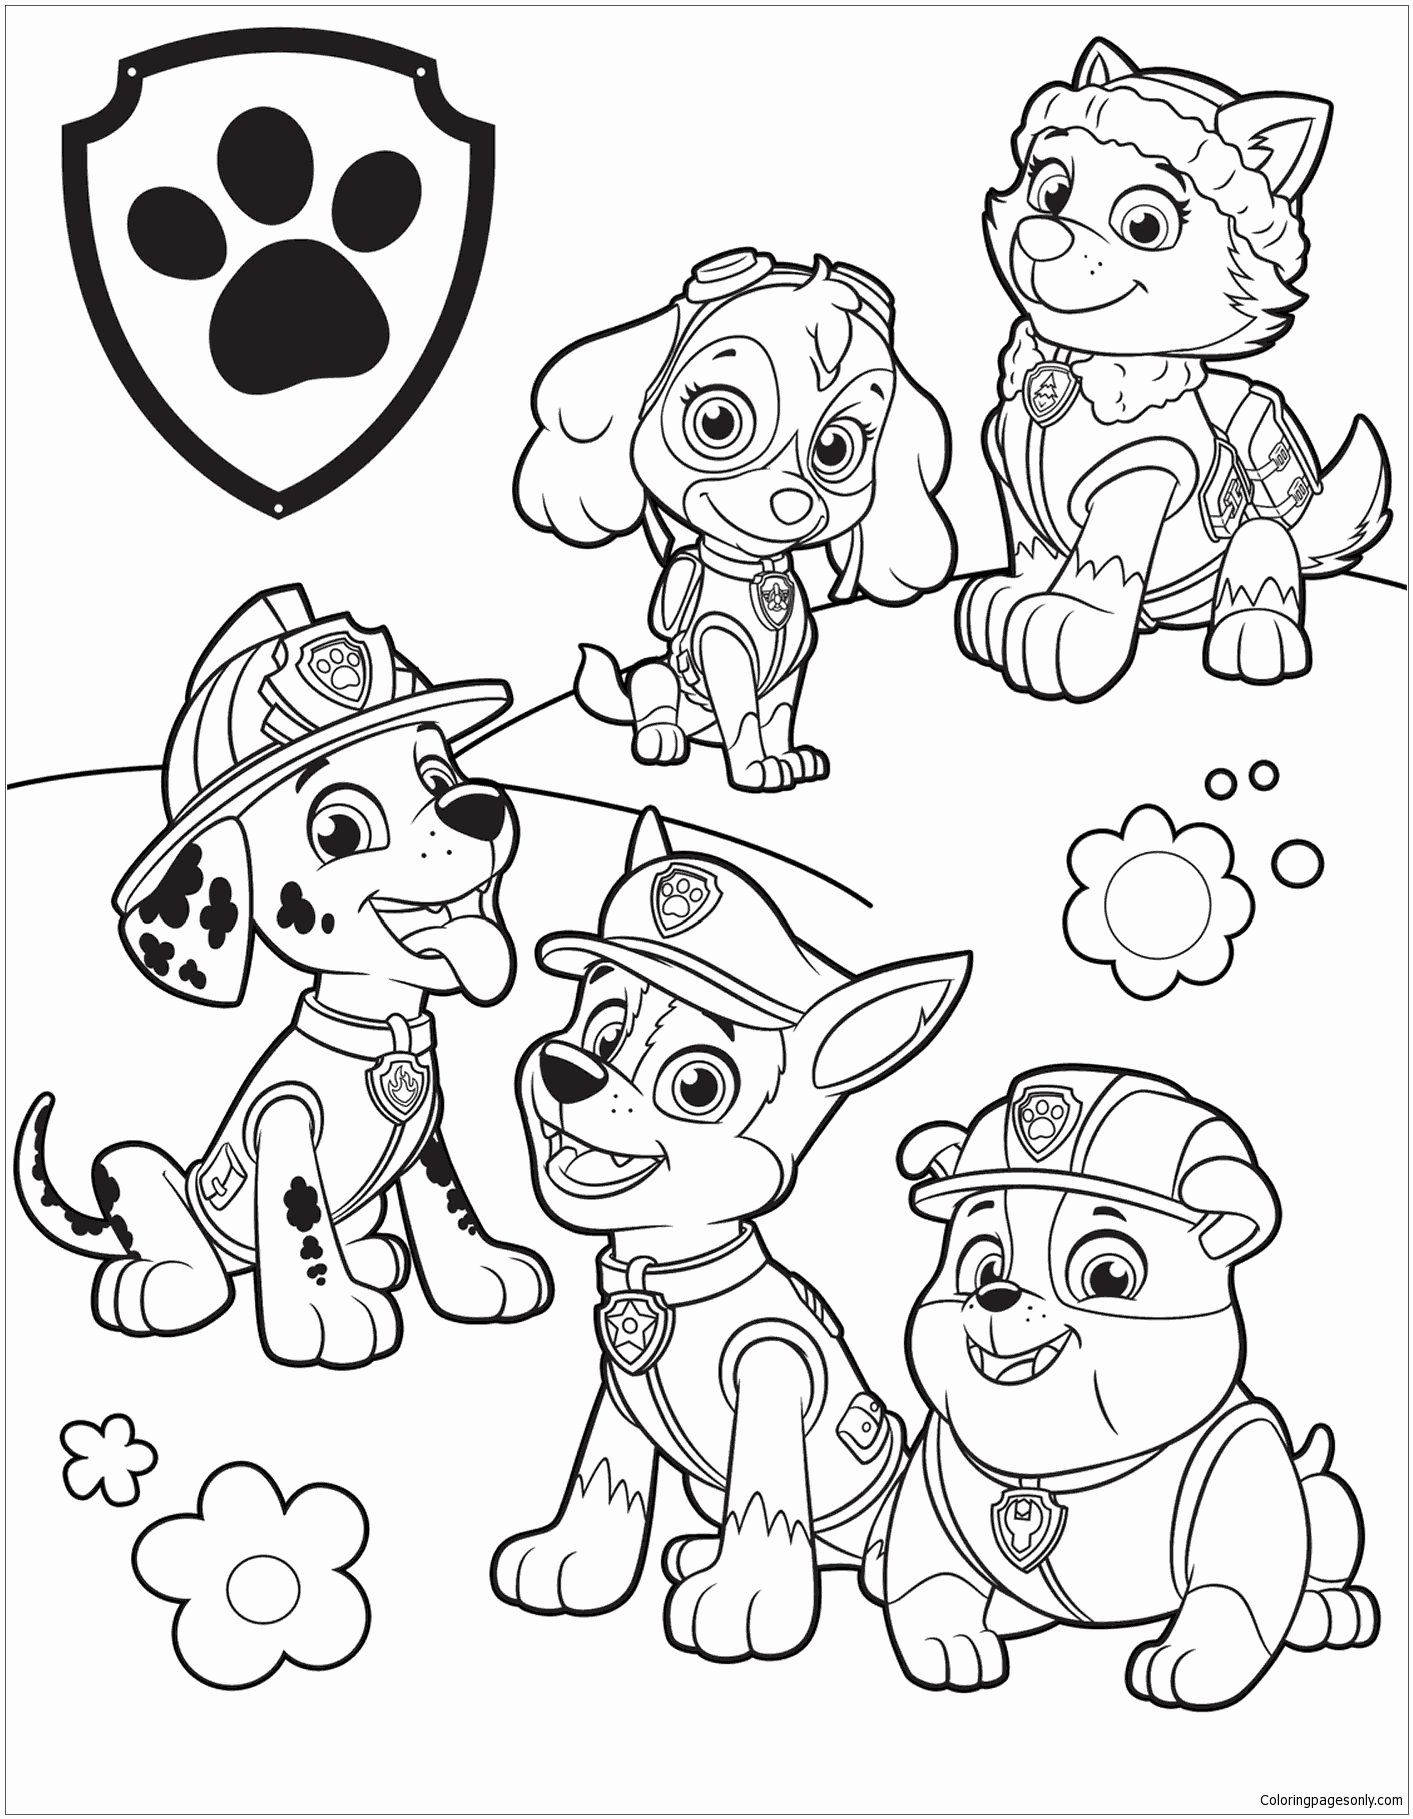 Paw Print Coloring Page Lovely Paw Patrol 39 Coloring Page Colouring Paw Patrol Coloring Pages Paw Patrol Coloring Cartoon Coloring Pages